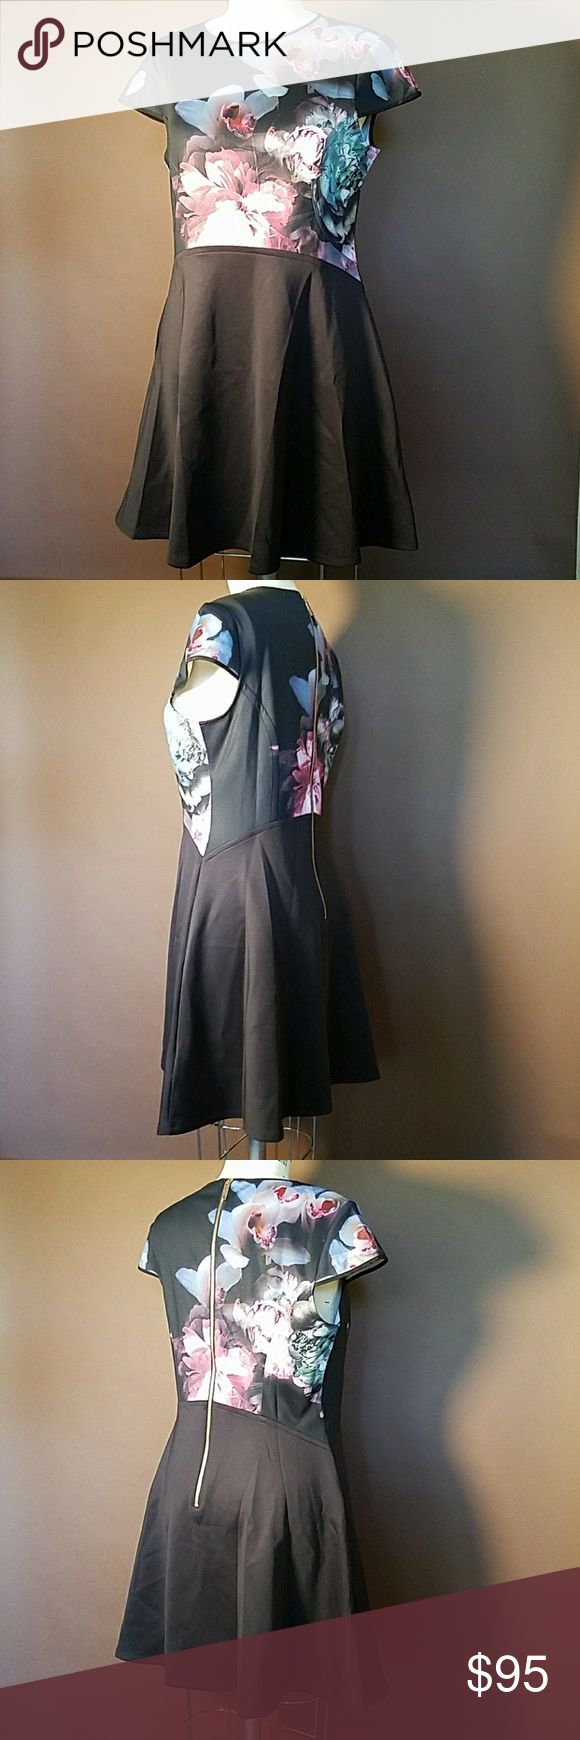 Ted Baker Floral and Black Dress Beautiful floral designed dress from Ted Baker. The dress is brand new from Ted Baker, without hang tags.  The dress is missing a size label, but is pictured on a size 8 mannequin, and is just a bit big on the mannequin. Ted Baker London Dresses